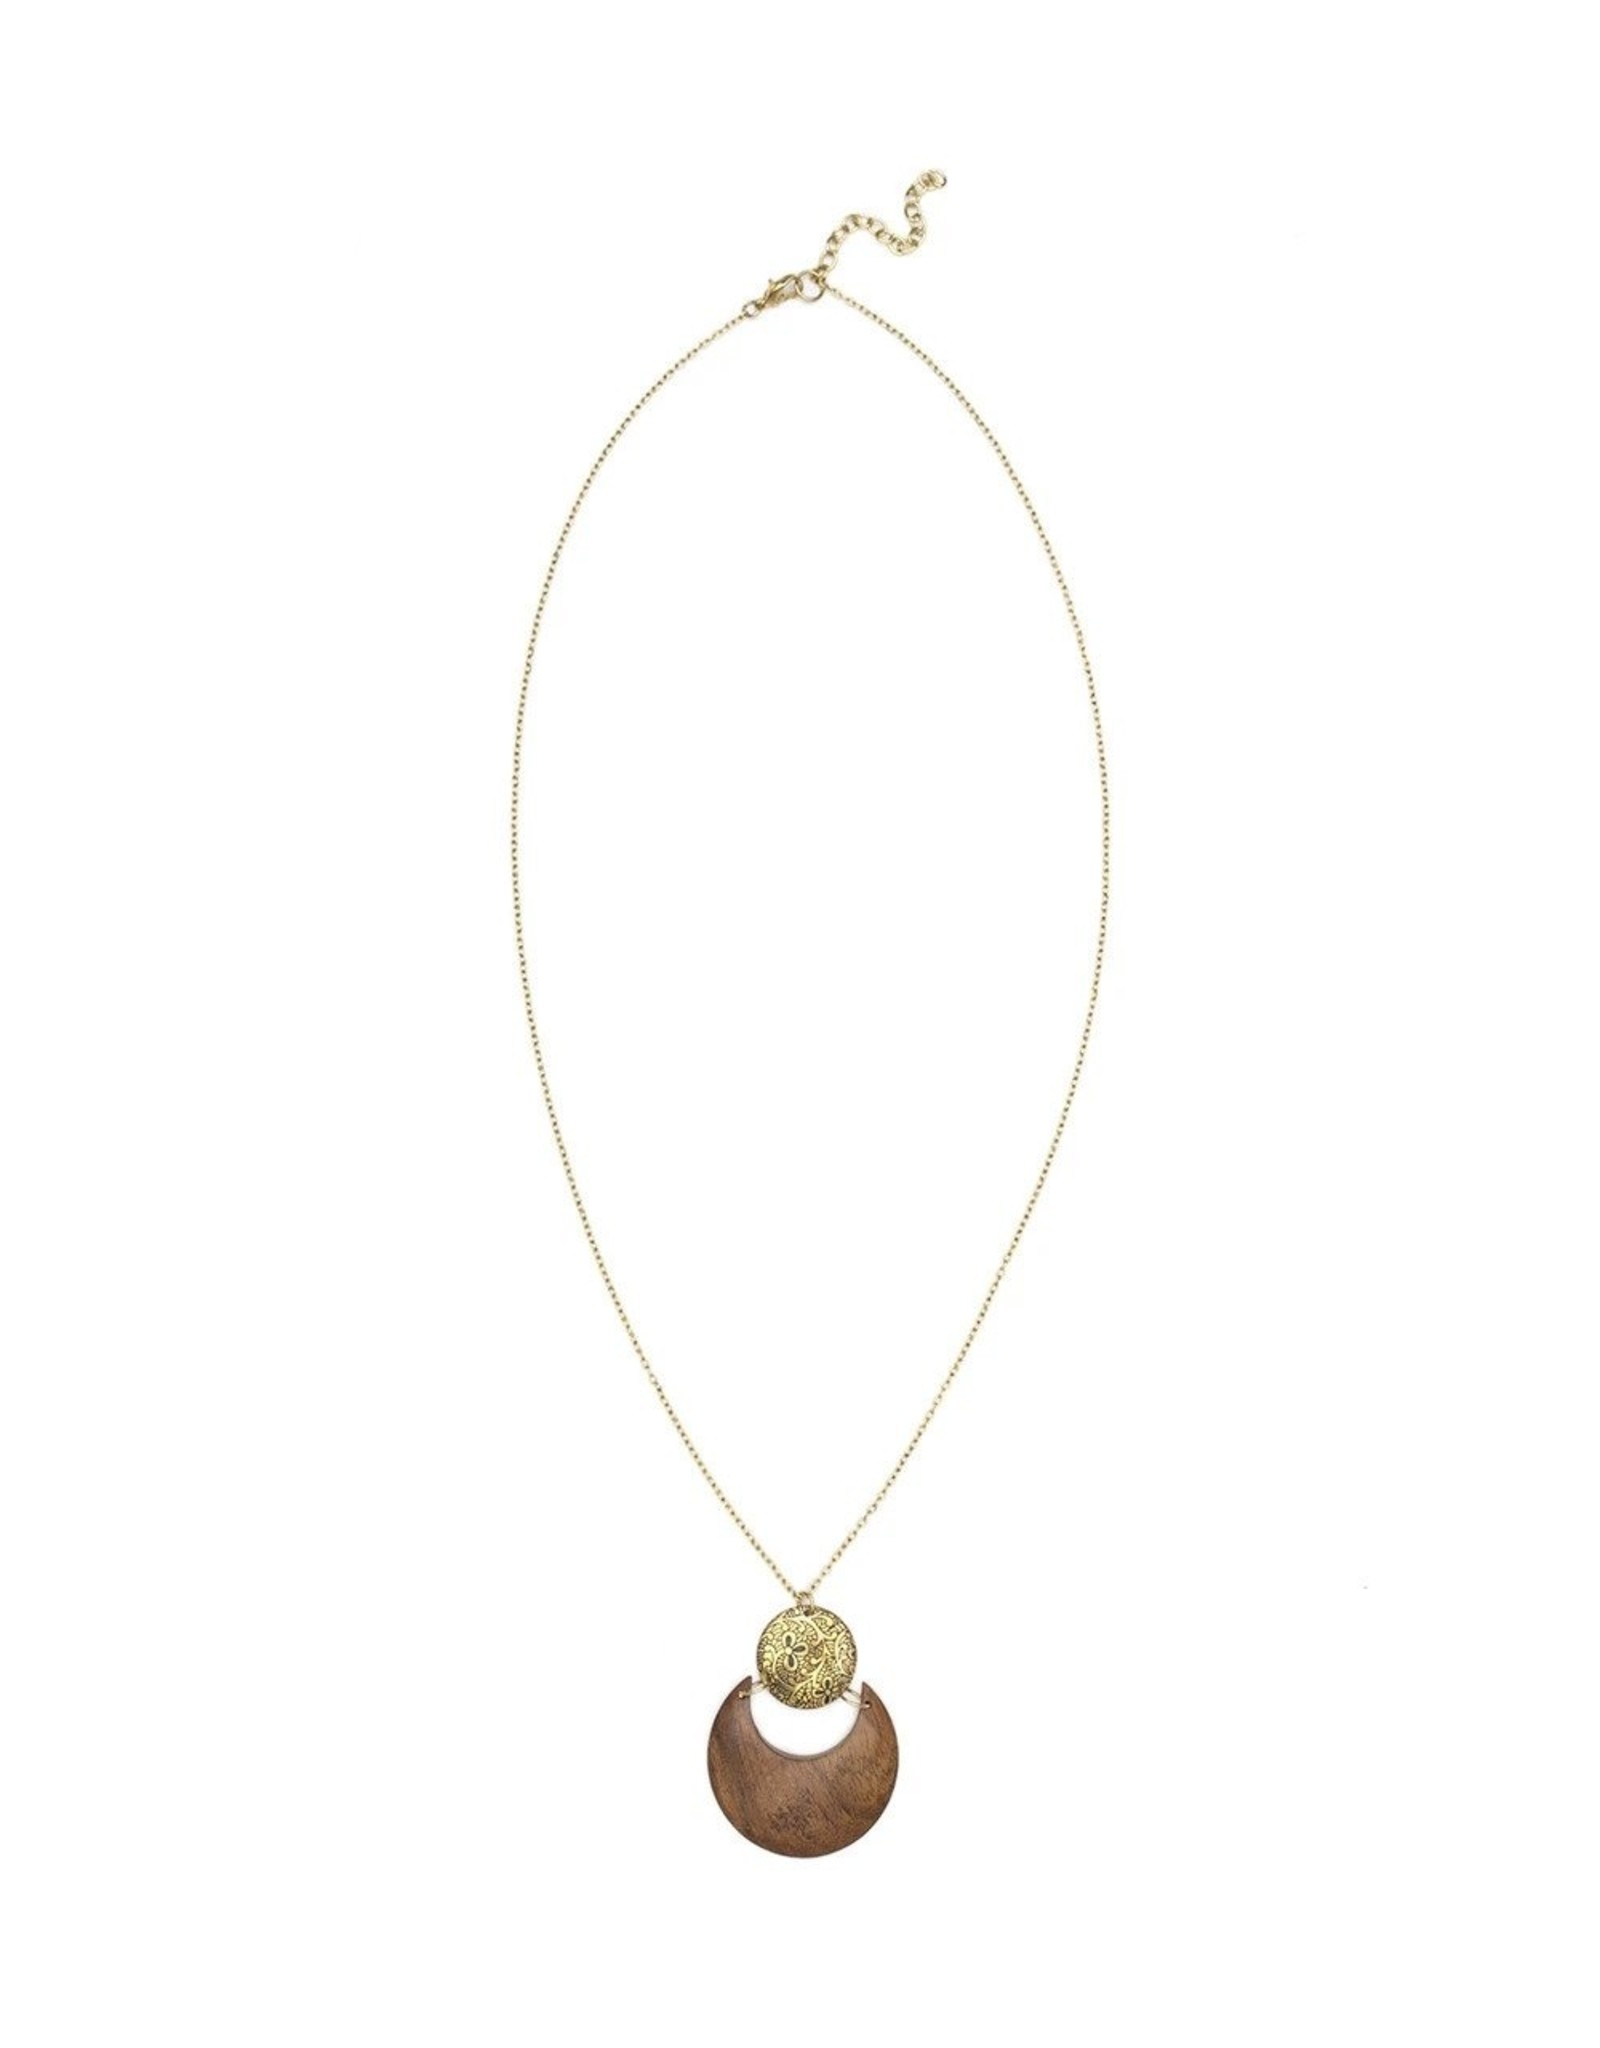 Earth and Fire Lunar Necklace, India